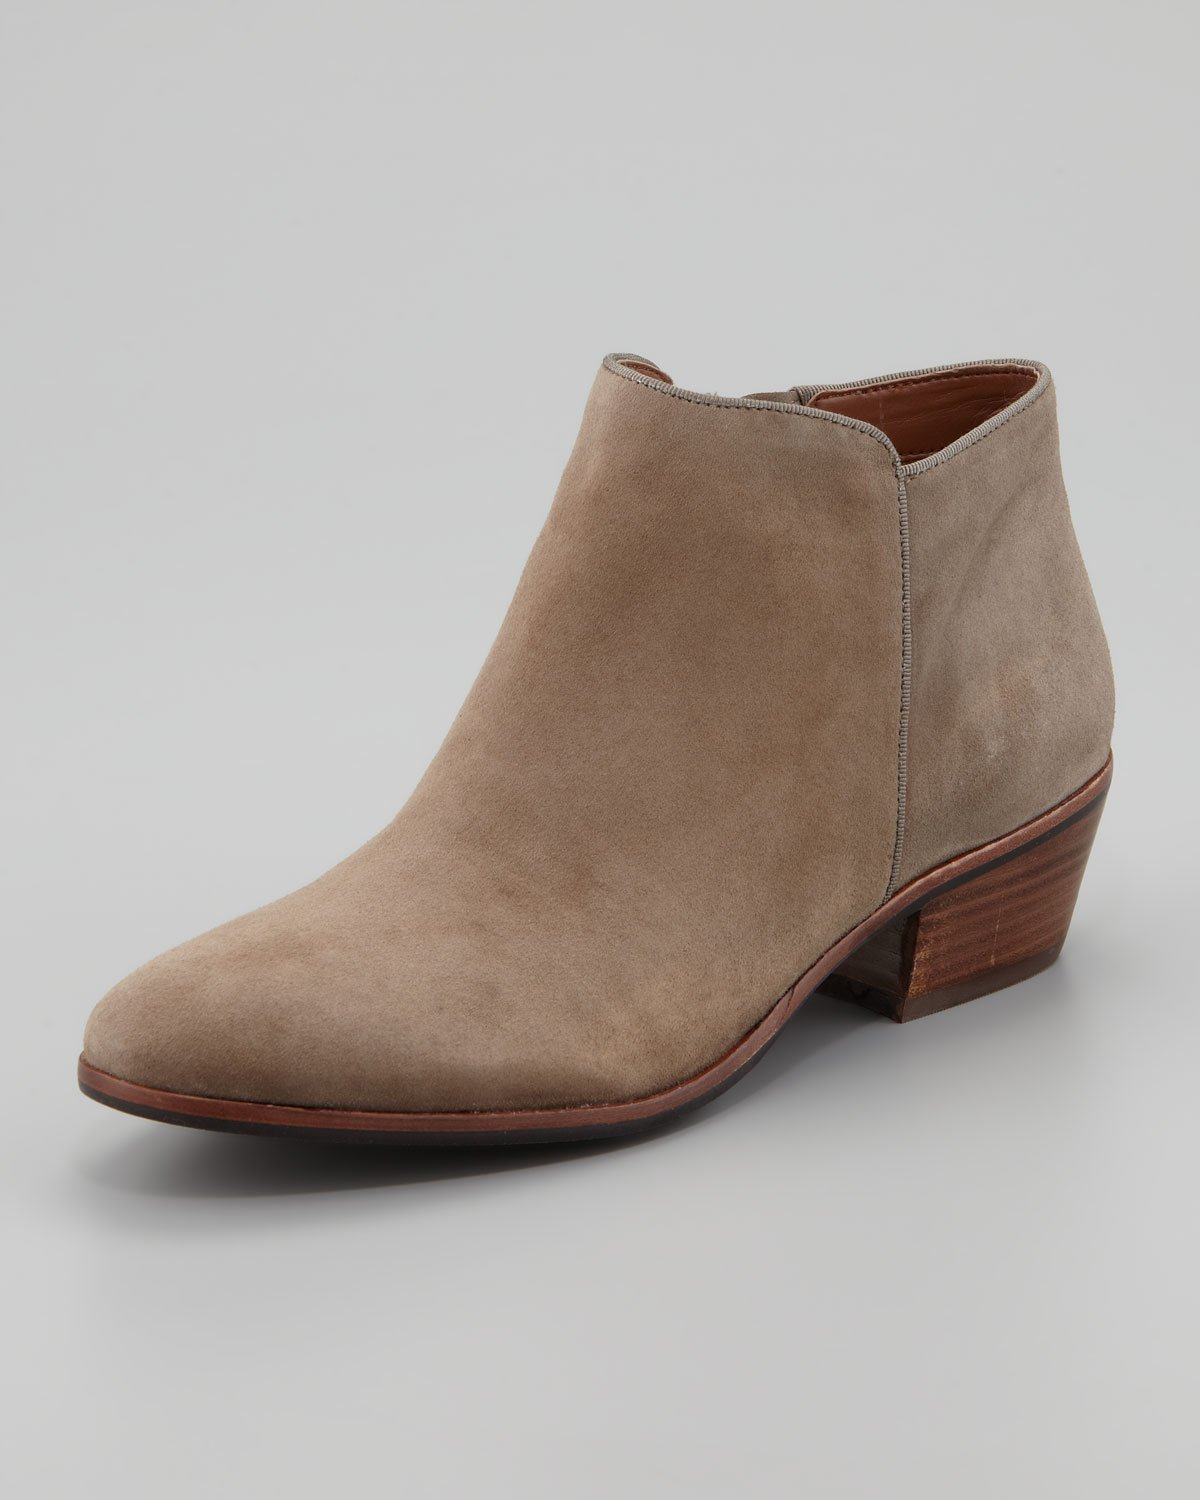 Short Suede Ankle Boots - Boot Hto